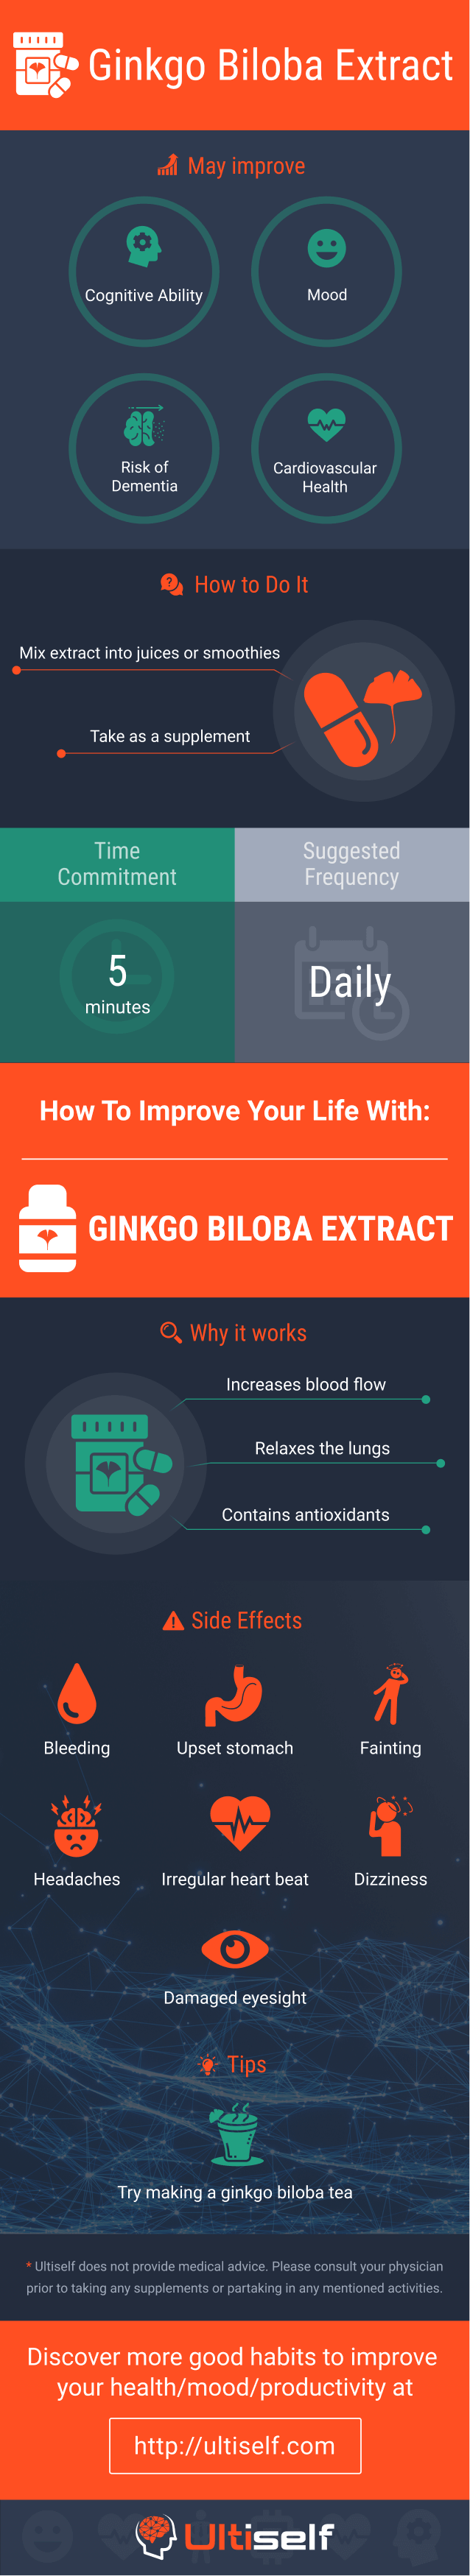 Ginkgo Biloba Extract infographic